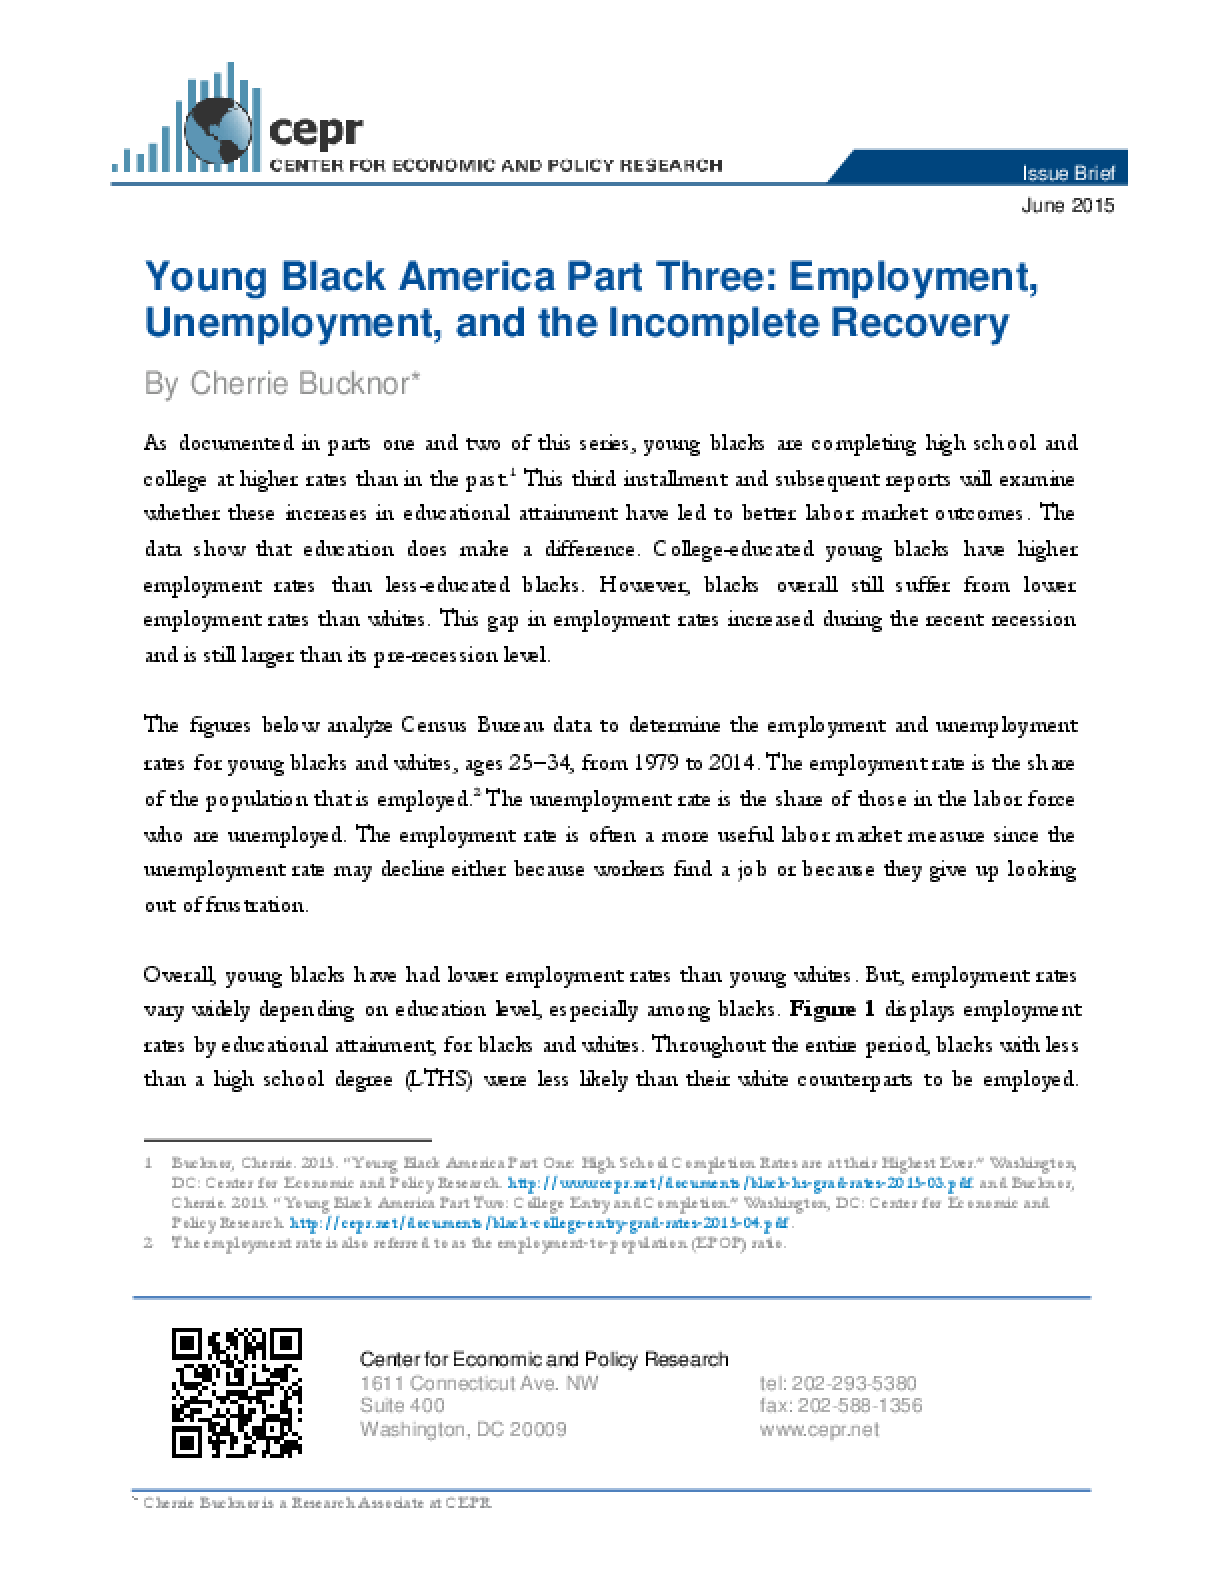 Young Black America Part Three: Employment, Unemployment, and the Incomplete Recovery